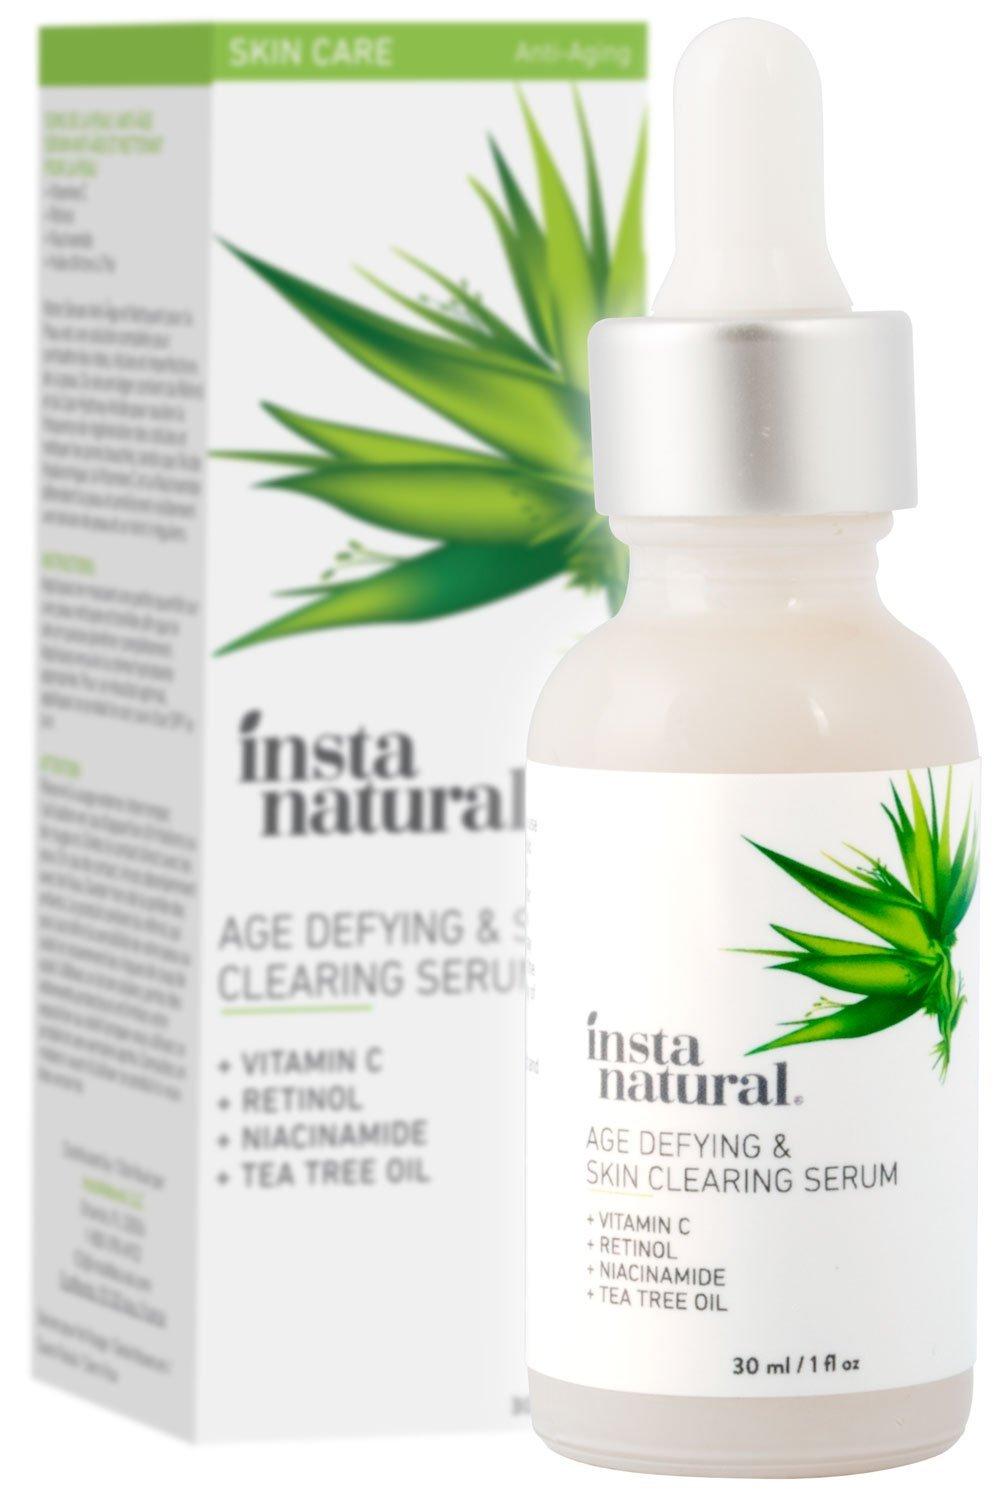 InstaNatural Vitamin C Skin Clearing Serum - Anti Aging Formula with Retinol & Salicylic Acid - Natural & Organic Wrinkle, Acne, Dark Spot, Fine Line & Hyperpigmentation Defying Facial Product - 1 OZ by InstaNatural (Image #6)